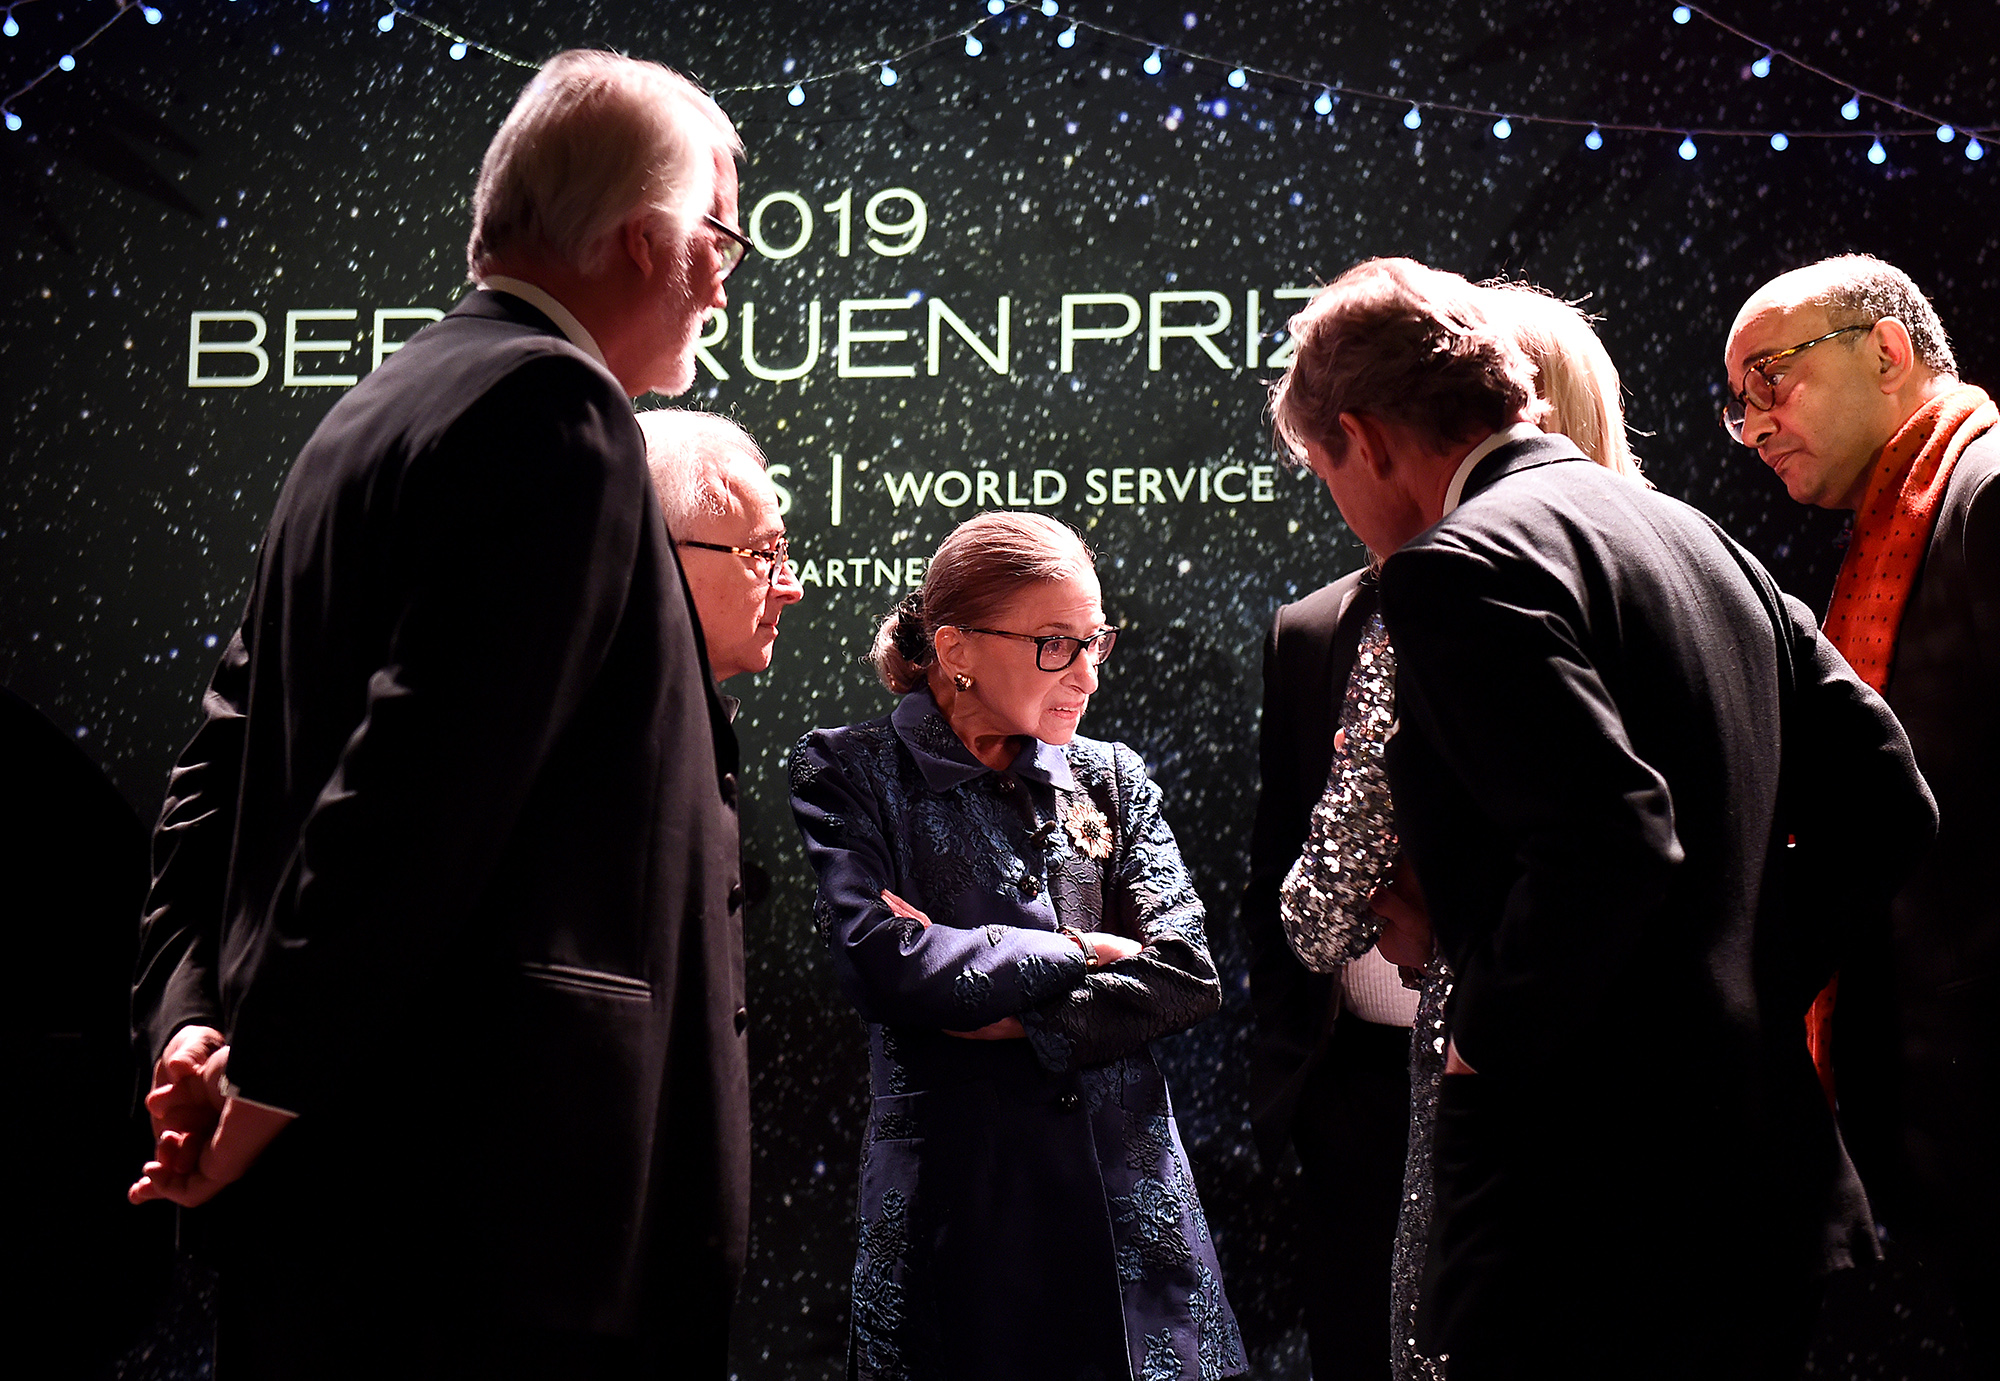 Fourth Annual Berggruen Prize Gala Celebrates 2019 Laureate Supreme Court Justice Ruth Bader Ginsburg In New York City – Inside